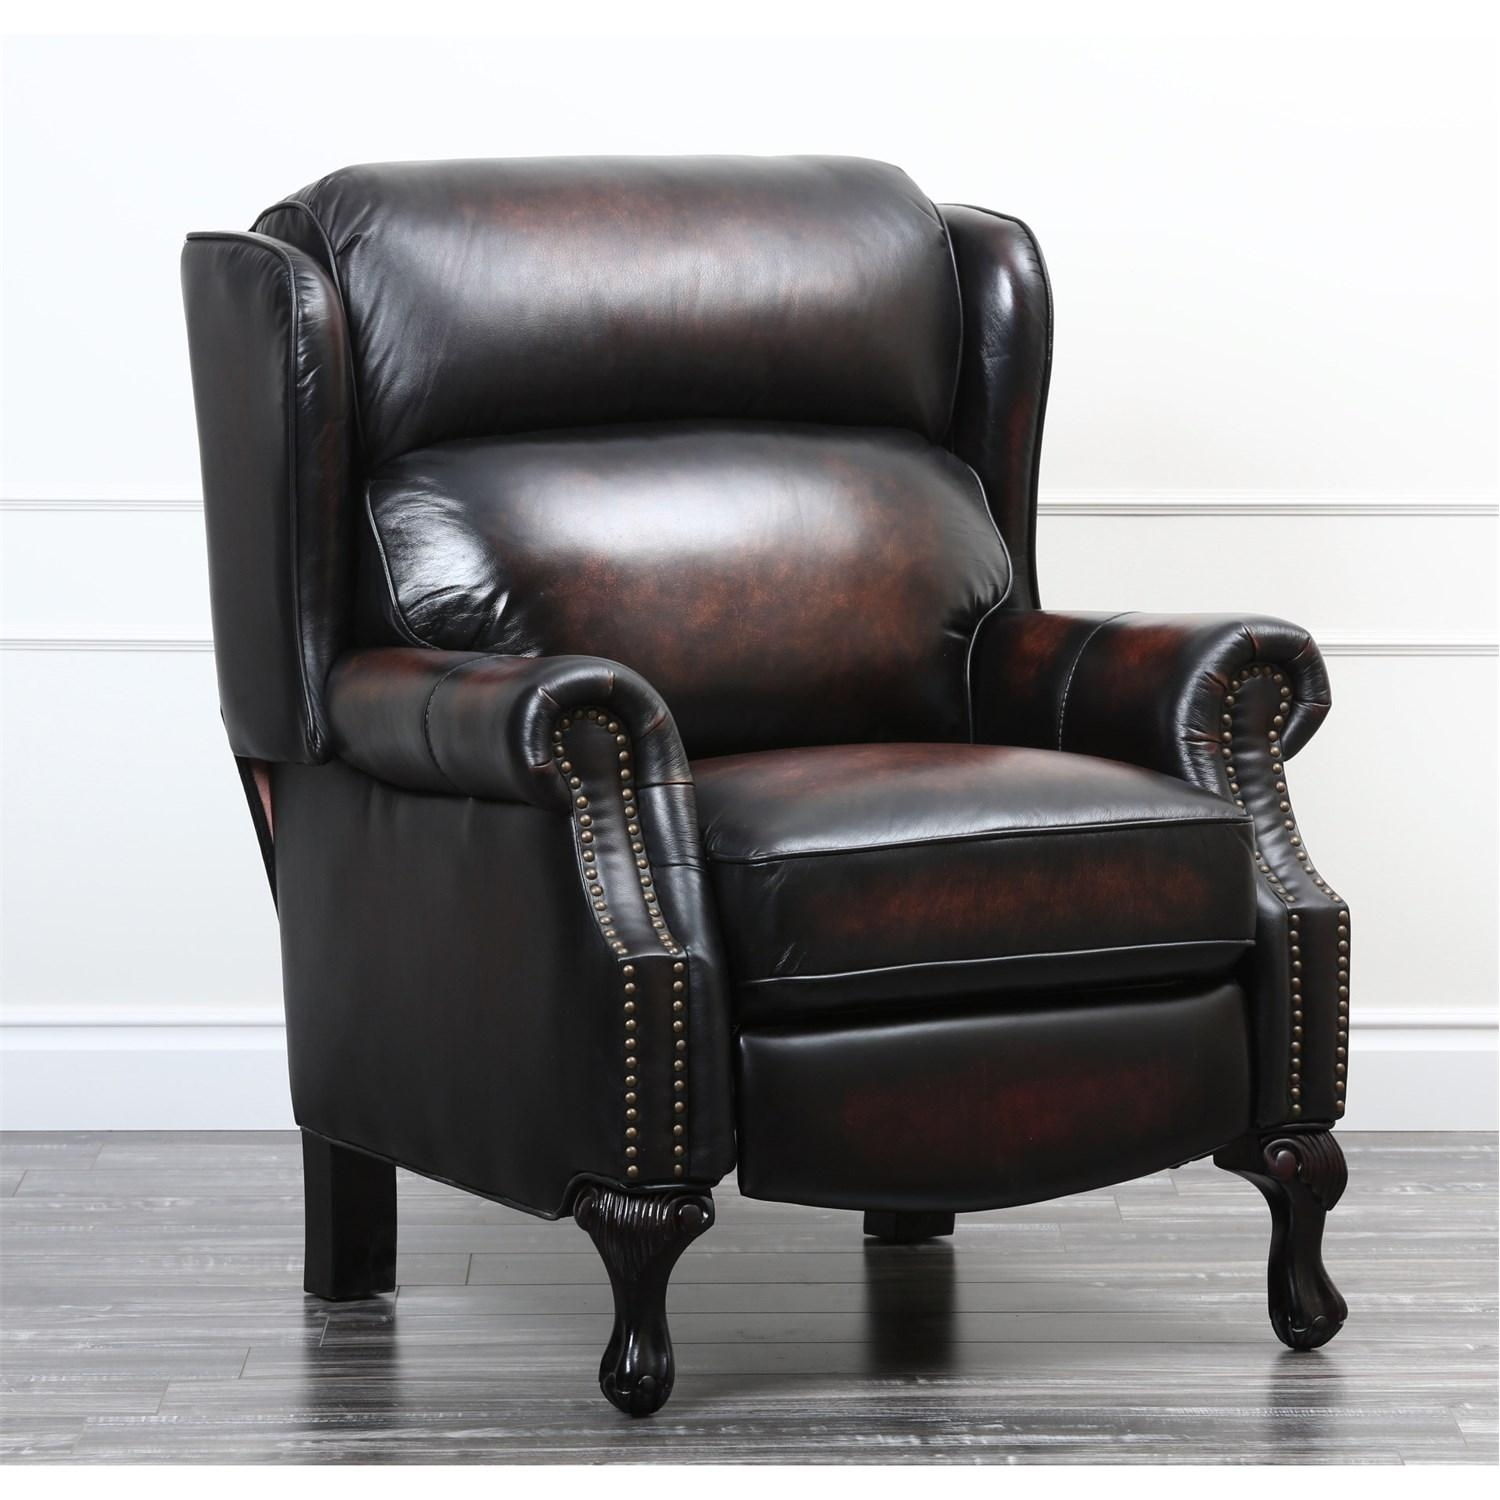 Abbyson Living Cr 9120 Brn Veda Pushback Recliner – Homeclick Within Abbyson Recliners (View 16 of 20)